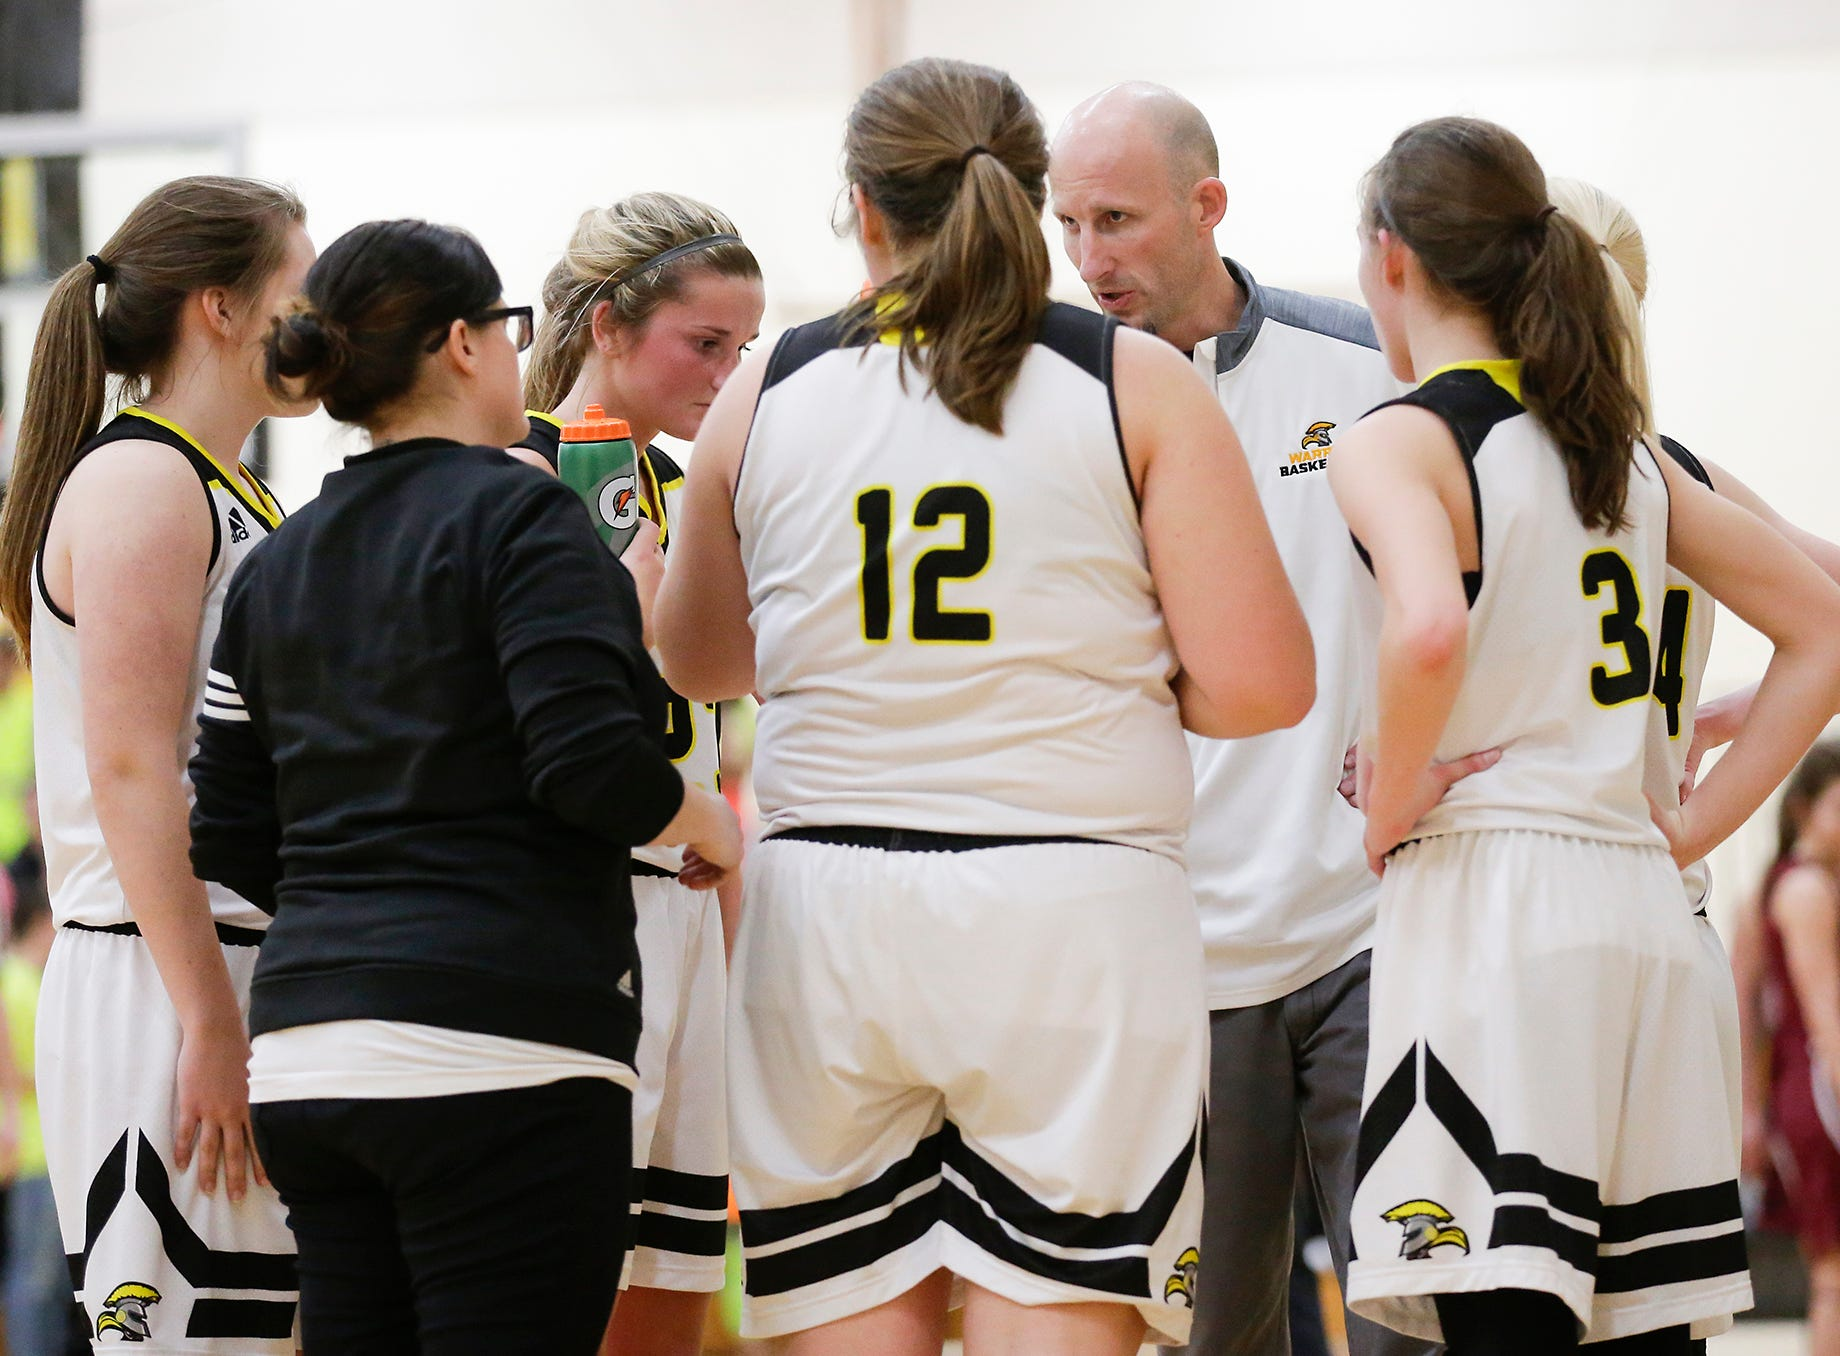 Waupun High School girls basketball coach Tim Aalsma talks to his team during a time out during a Saturday, February 23, 2019 during their WIAA Division 4 sectional quarterfinal game against Mayville High School in Waupun. Waupun won the game 62-45. Doug Raflik/USA TODAY NETWORK-Wisconsin